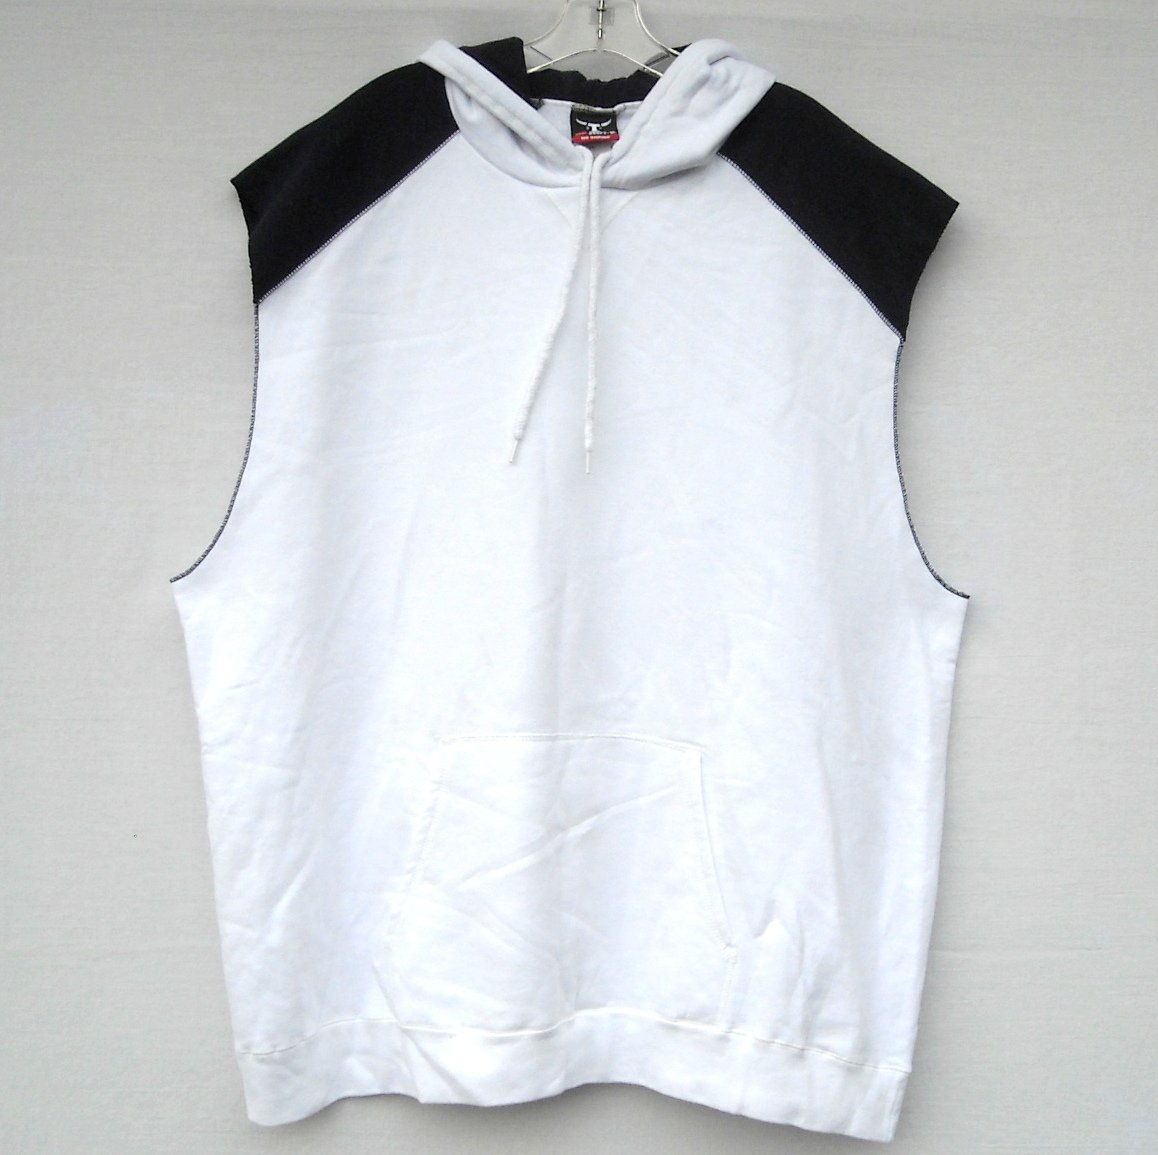 06d41a04 Men's Jogger White Hoodie Sleeveless Muscle Shirt Hanes Size L